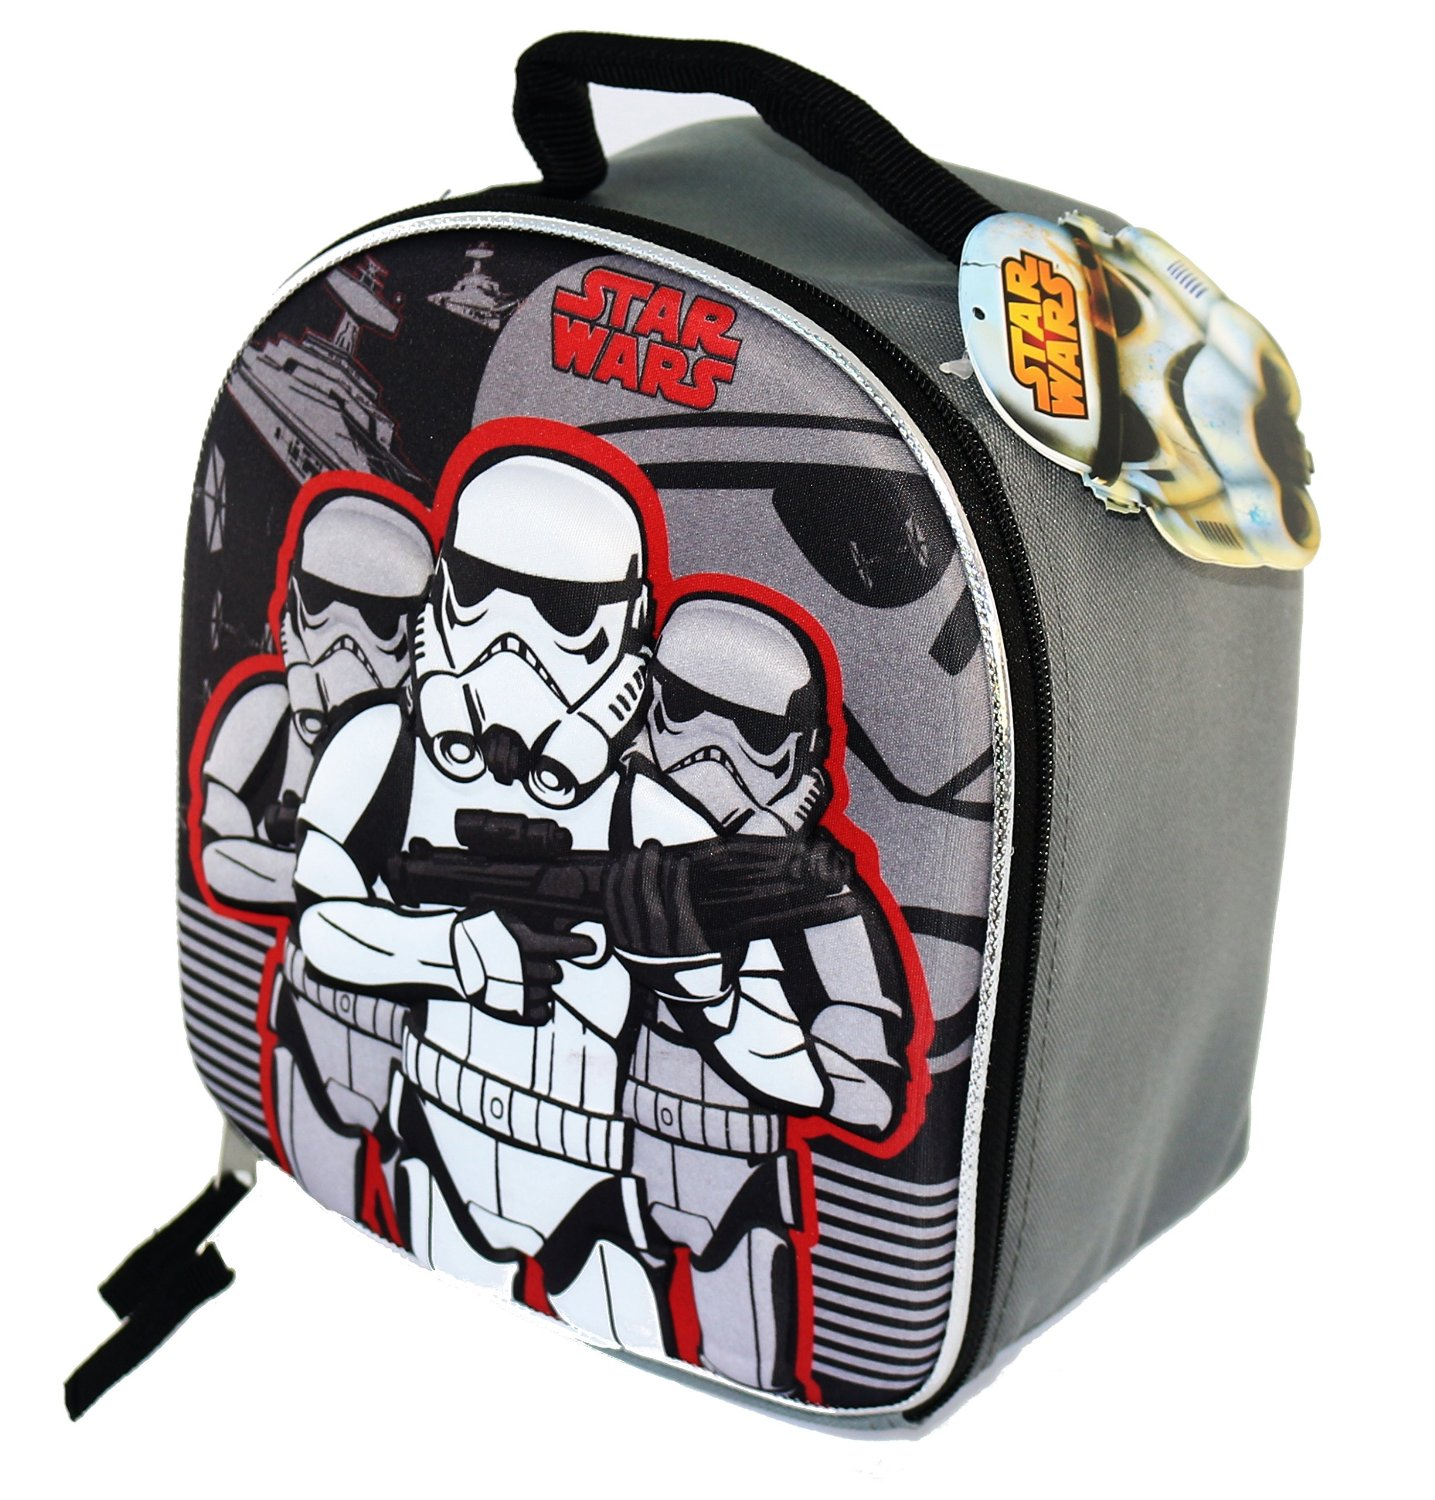 11 stunning Star Wars Lunch Boxes that Kids Will Love: Trooper Dome Shaped Lunch Bag With Molded Front